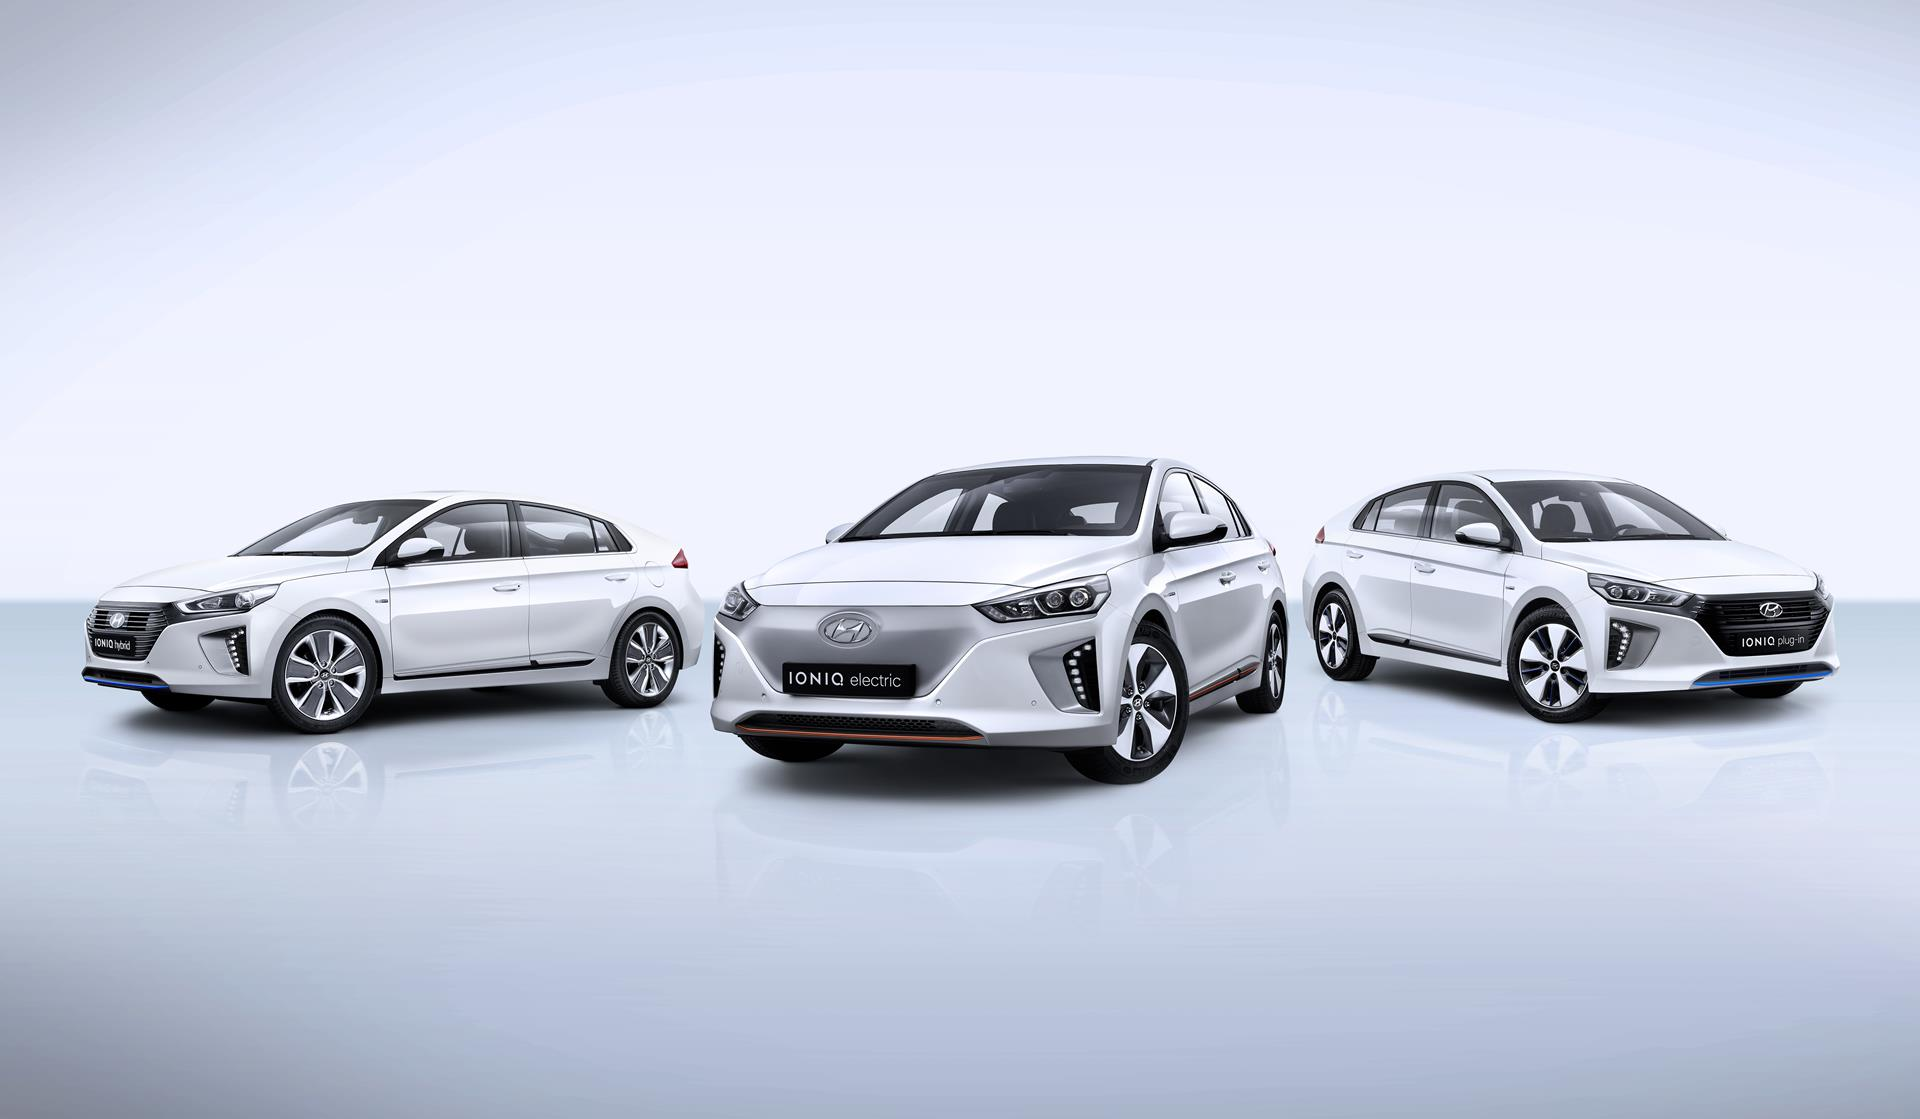 Hyundai IONIQ pictures and wallpaper